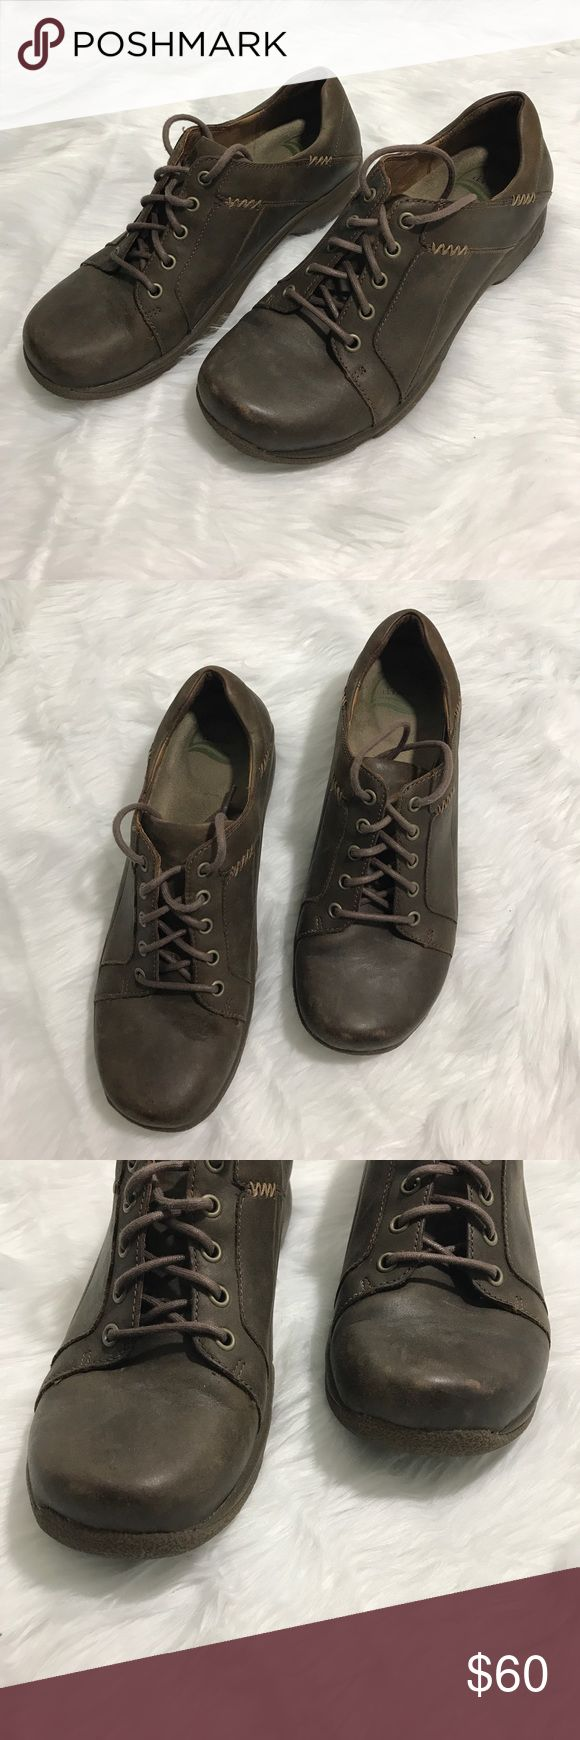 Dansko leather shoes Distressed leather. Brown. Great condition. Slip resistant. Few scuffs as pictured. Normal wear and tear . 1008 Dansko Shoes